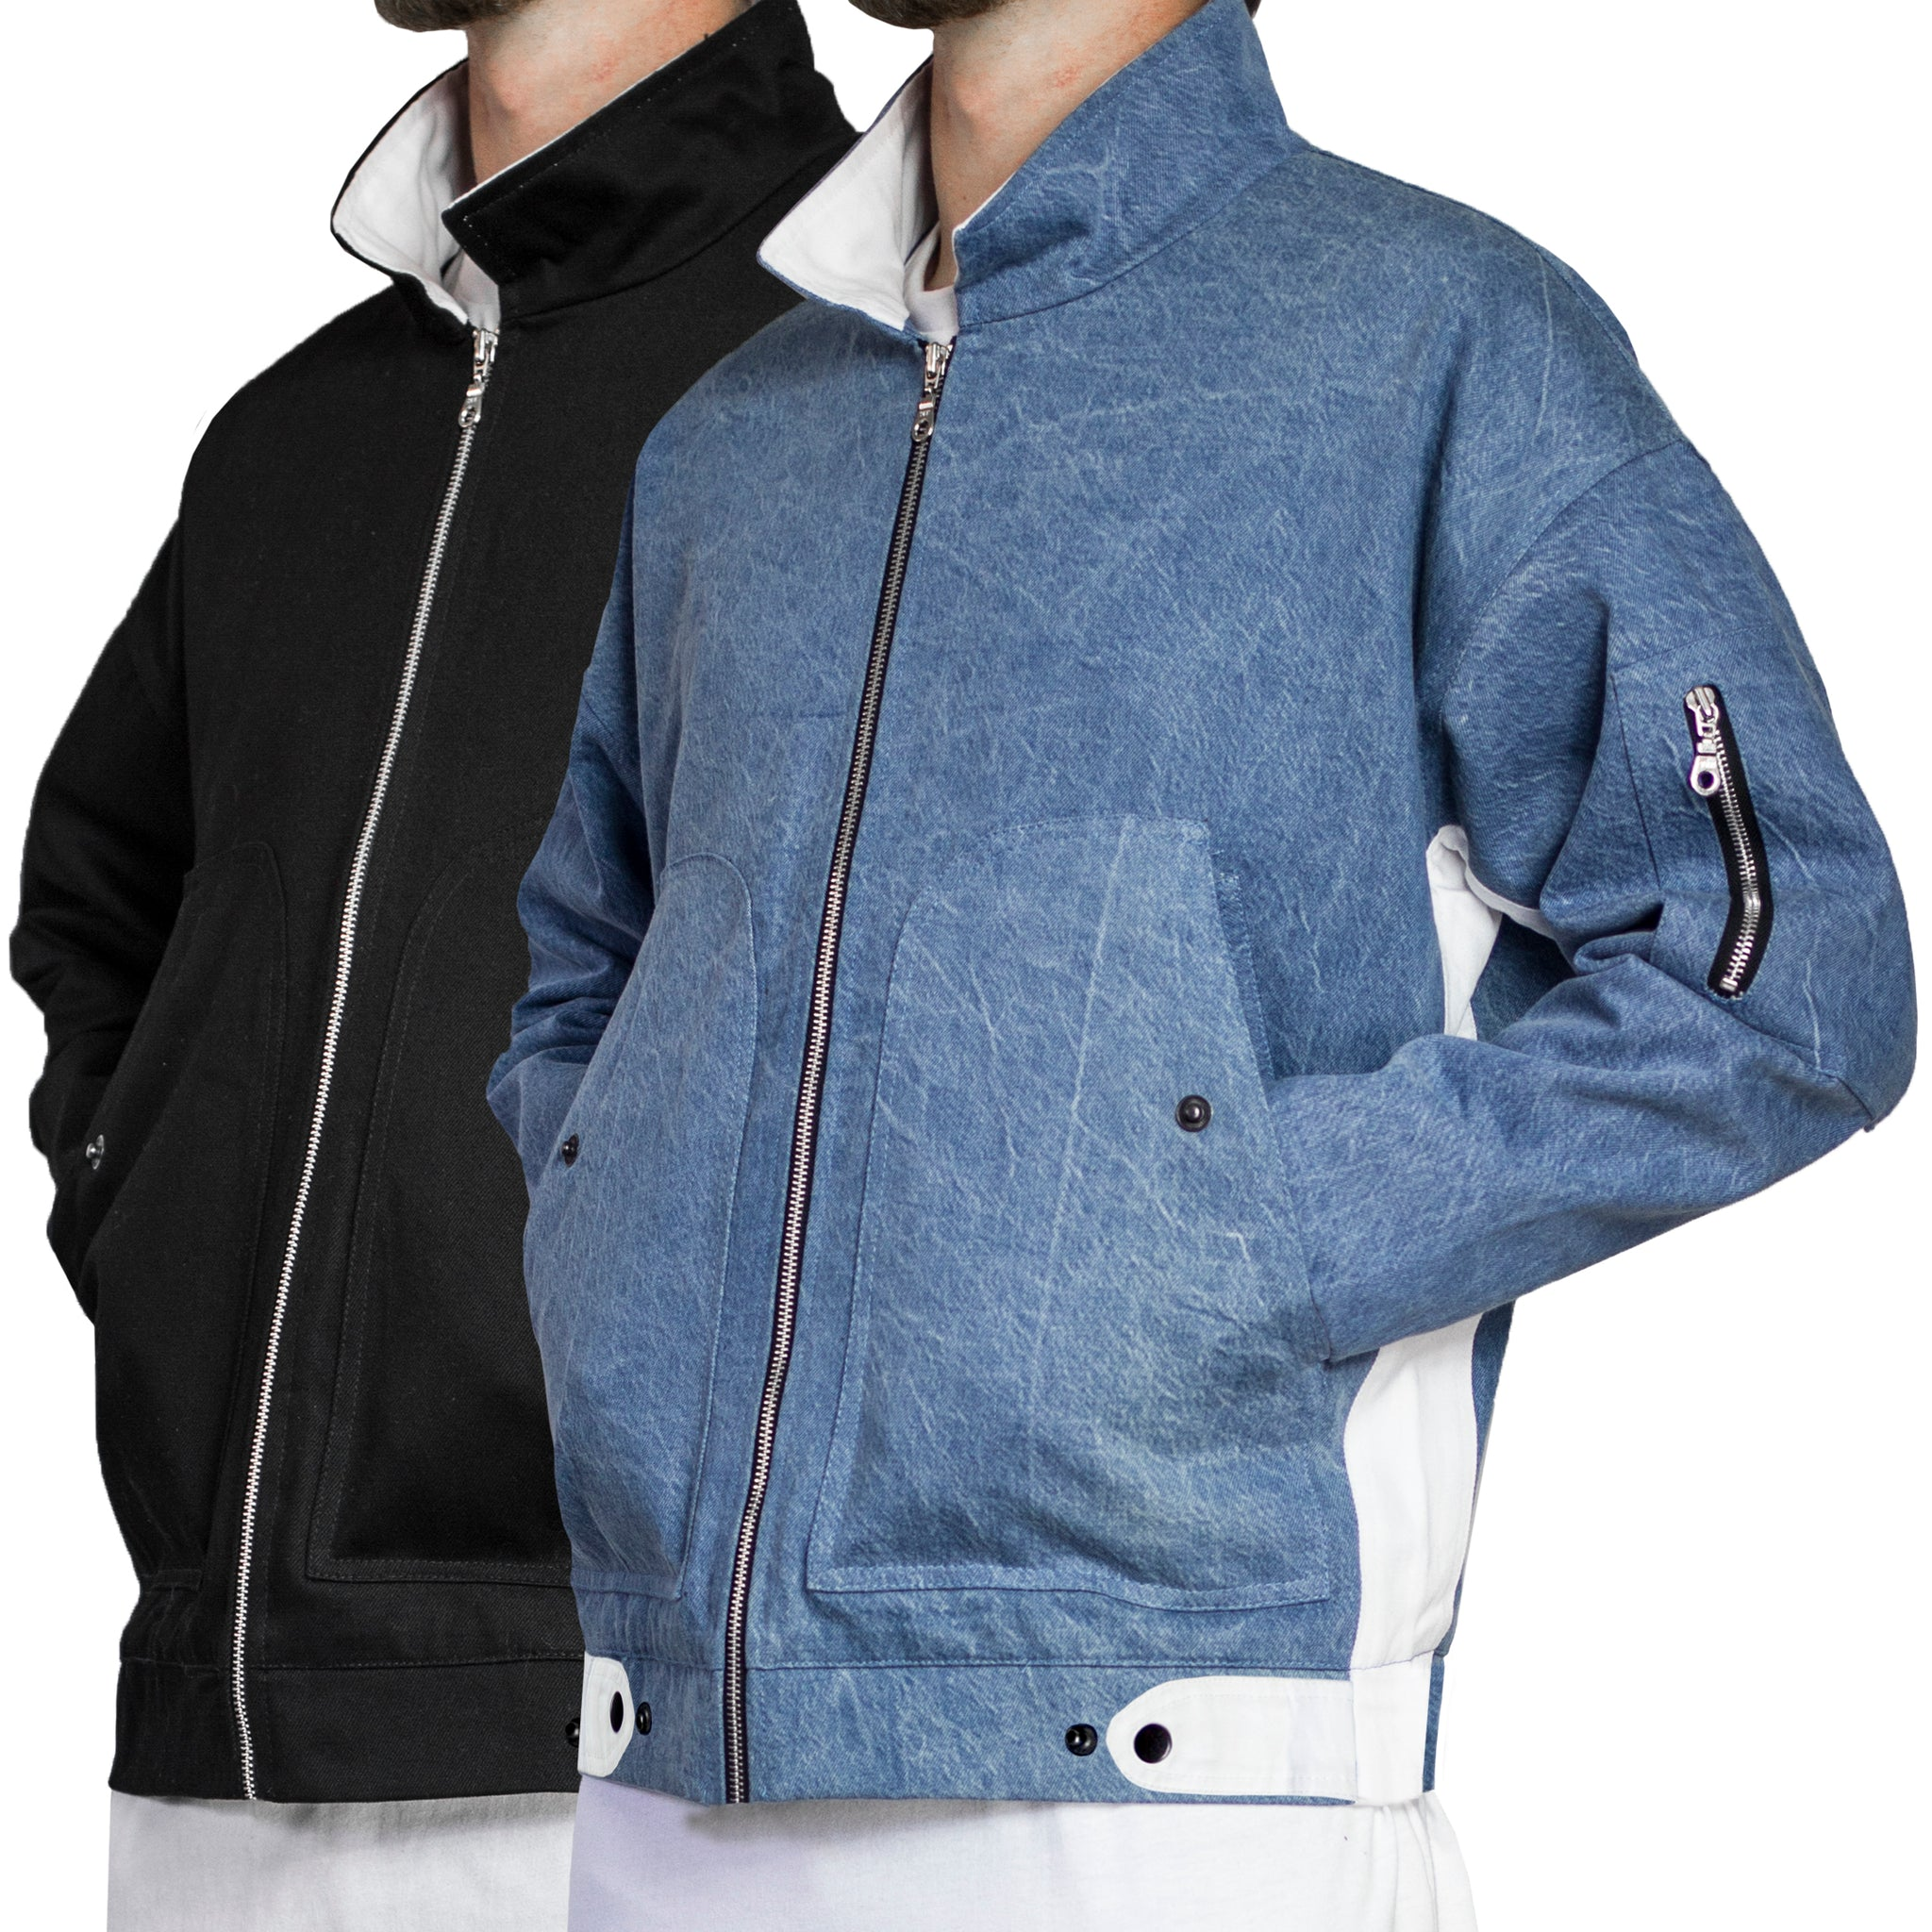 Pilot Jackets 2.0 : 2 Colorways